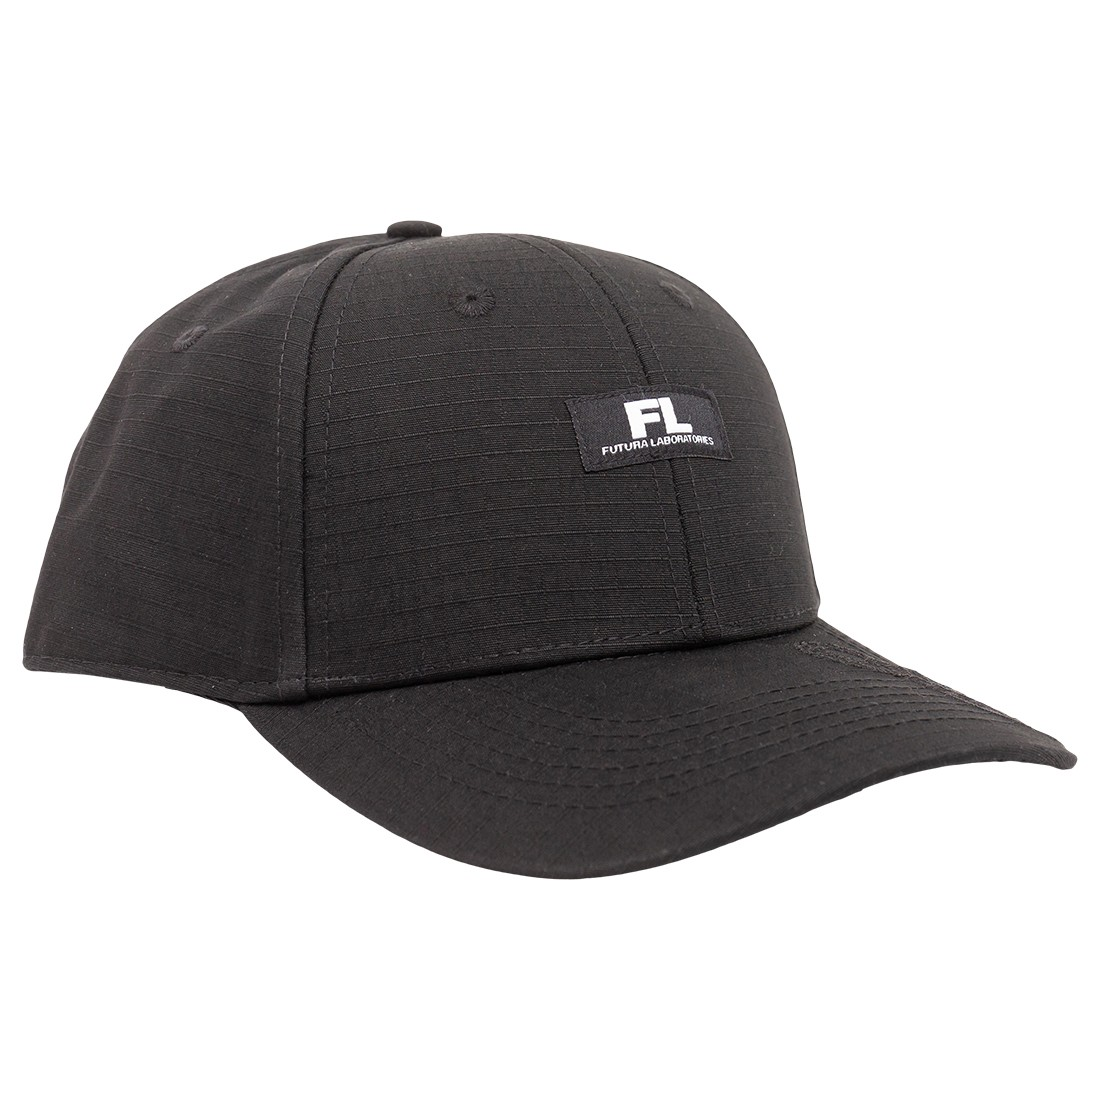 Futura Laboratories Atom Baseball Cap (black)